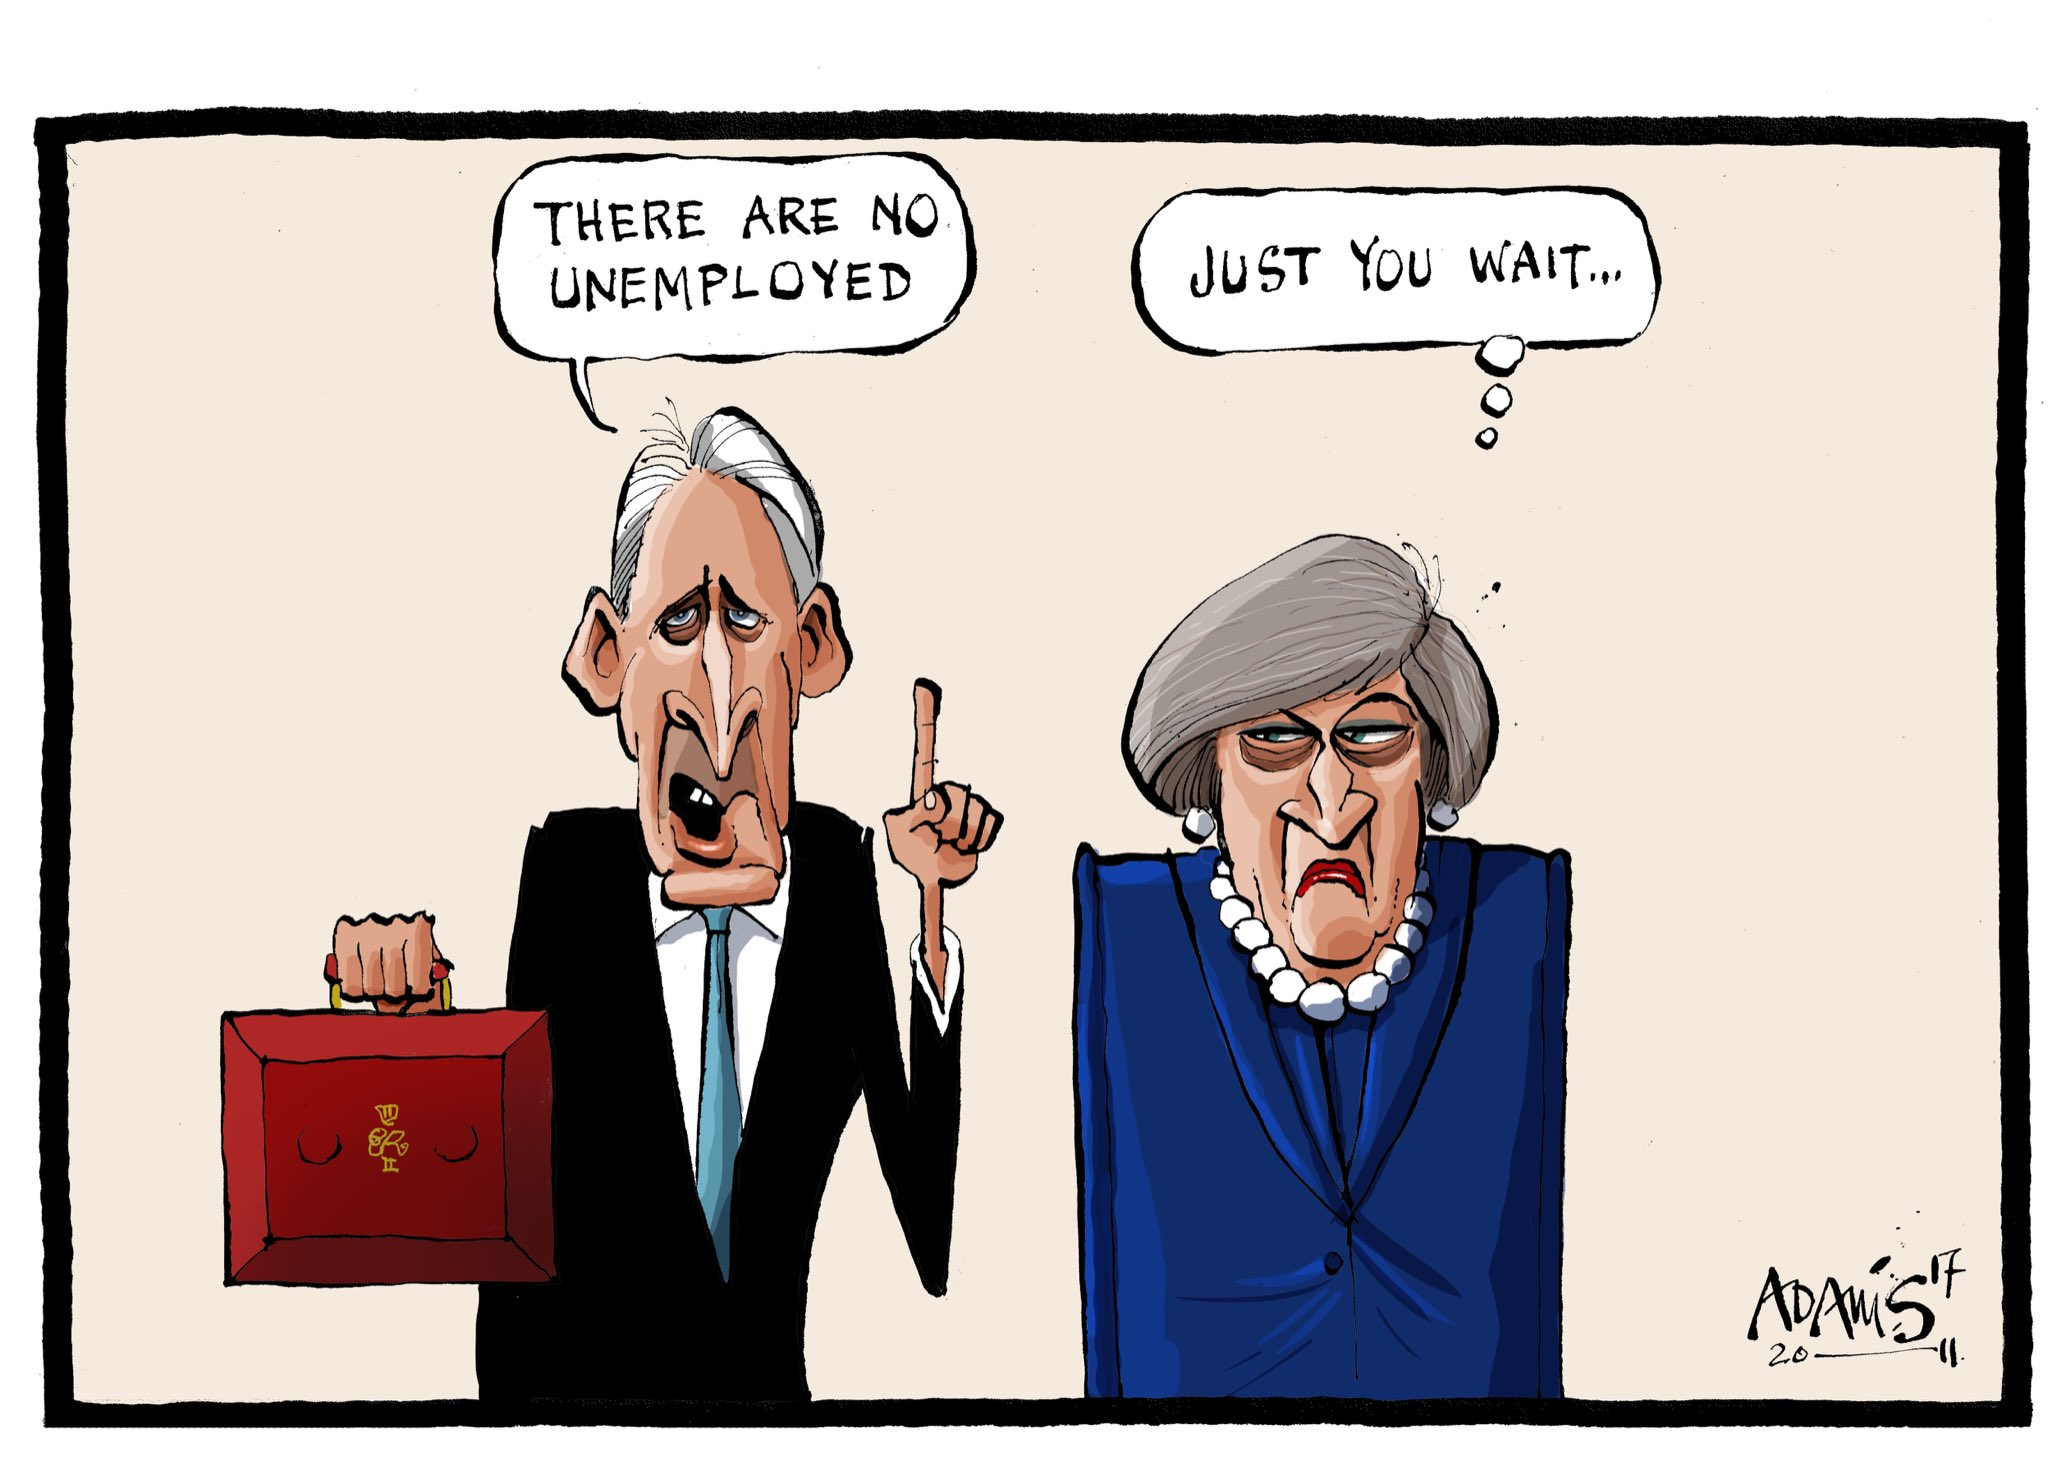 Our @Adamstoon1 @EveningStandard has his take on Downing Street relations https://t.co/0MUkmIgmNv